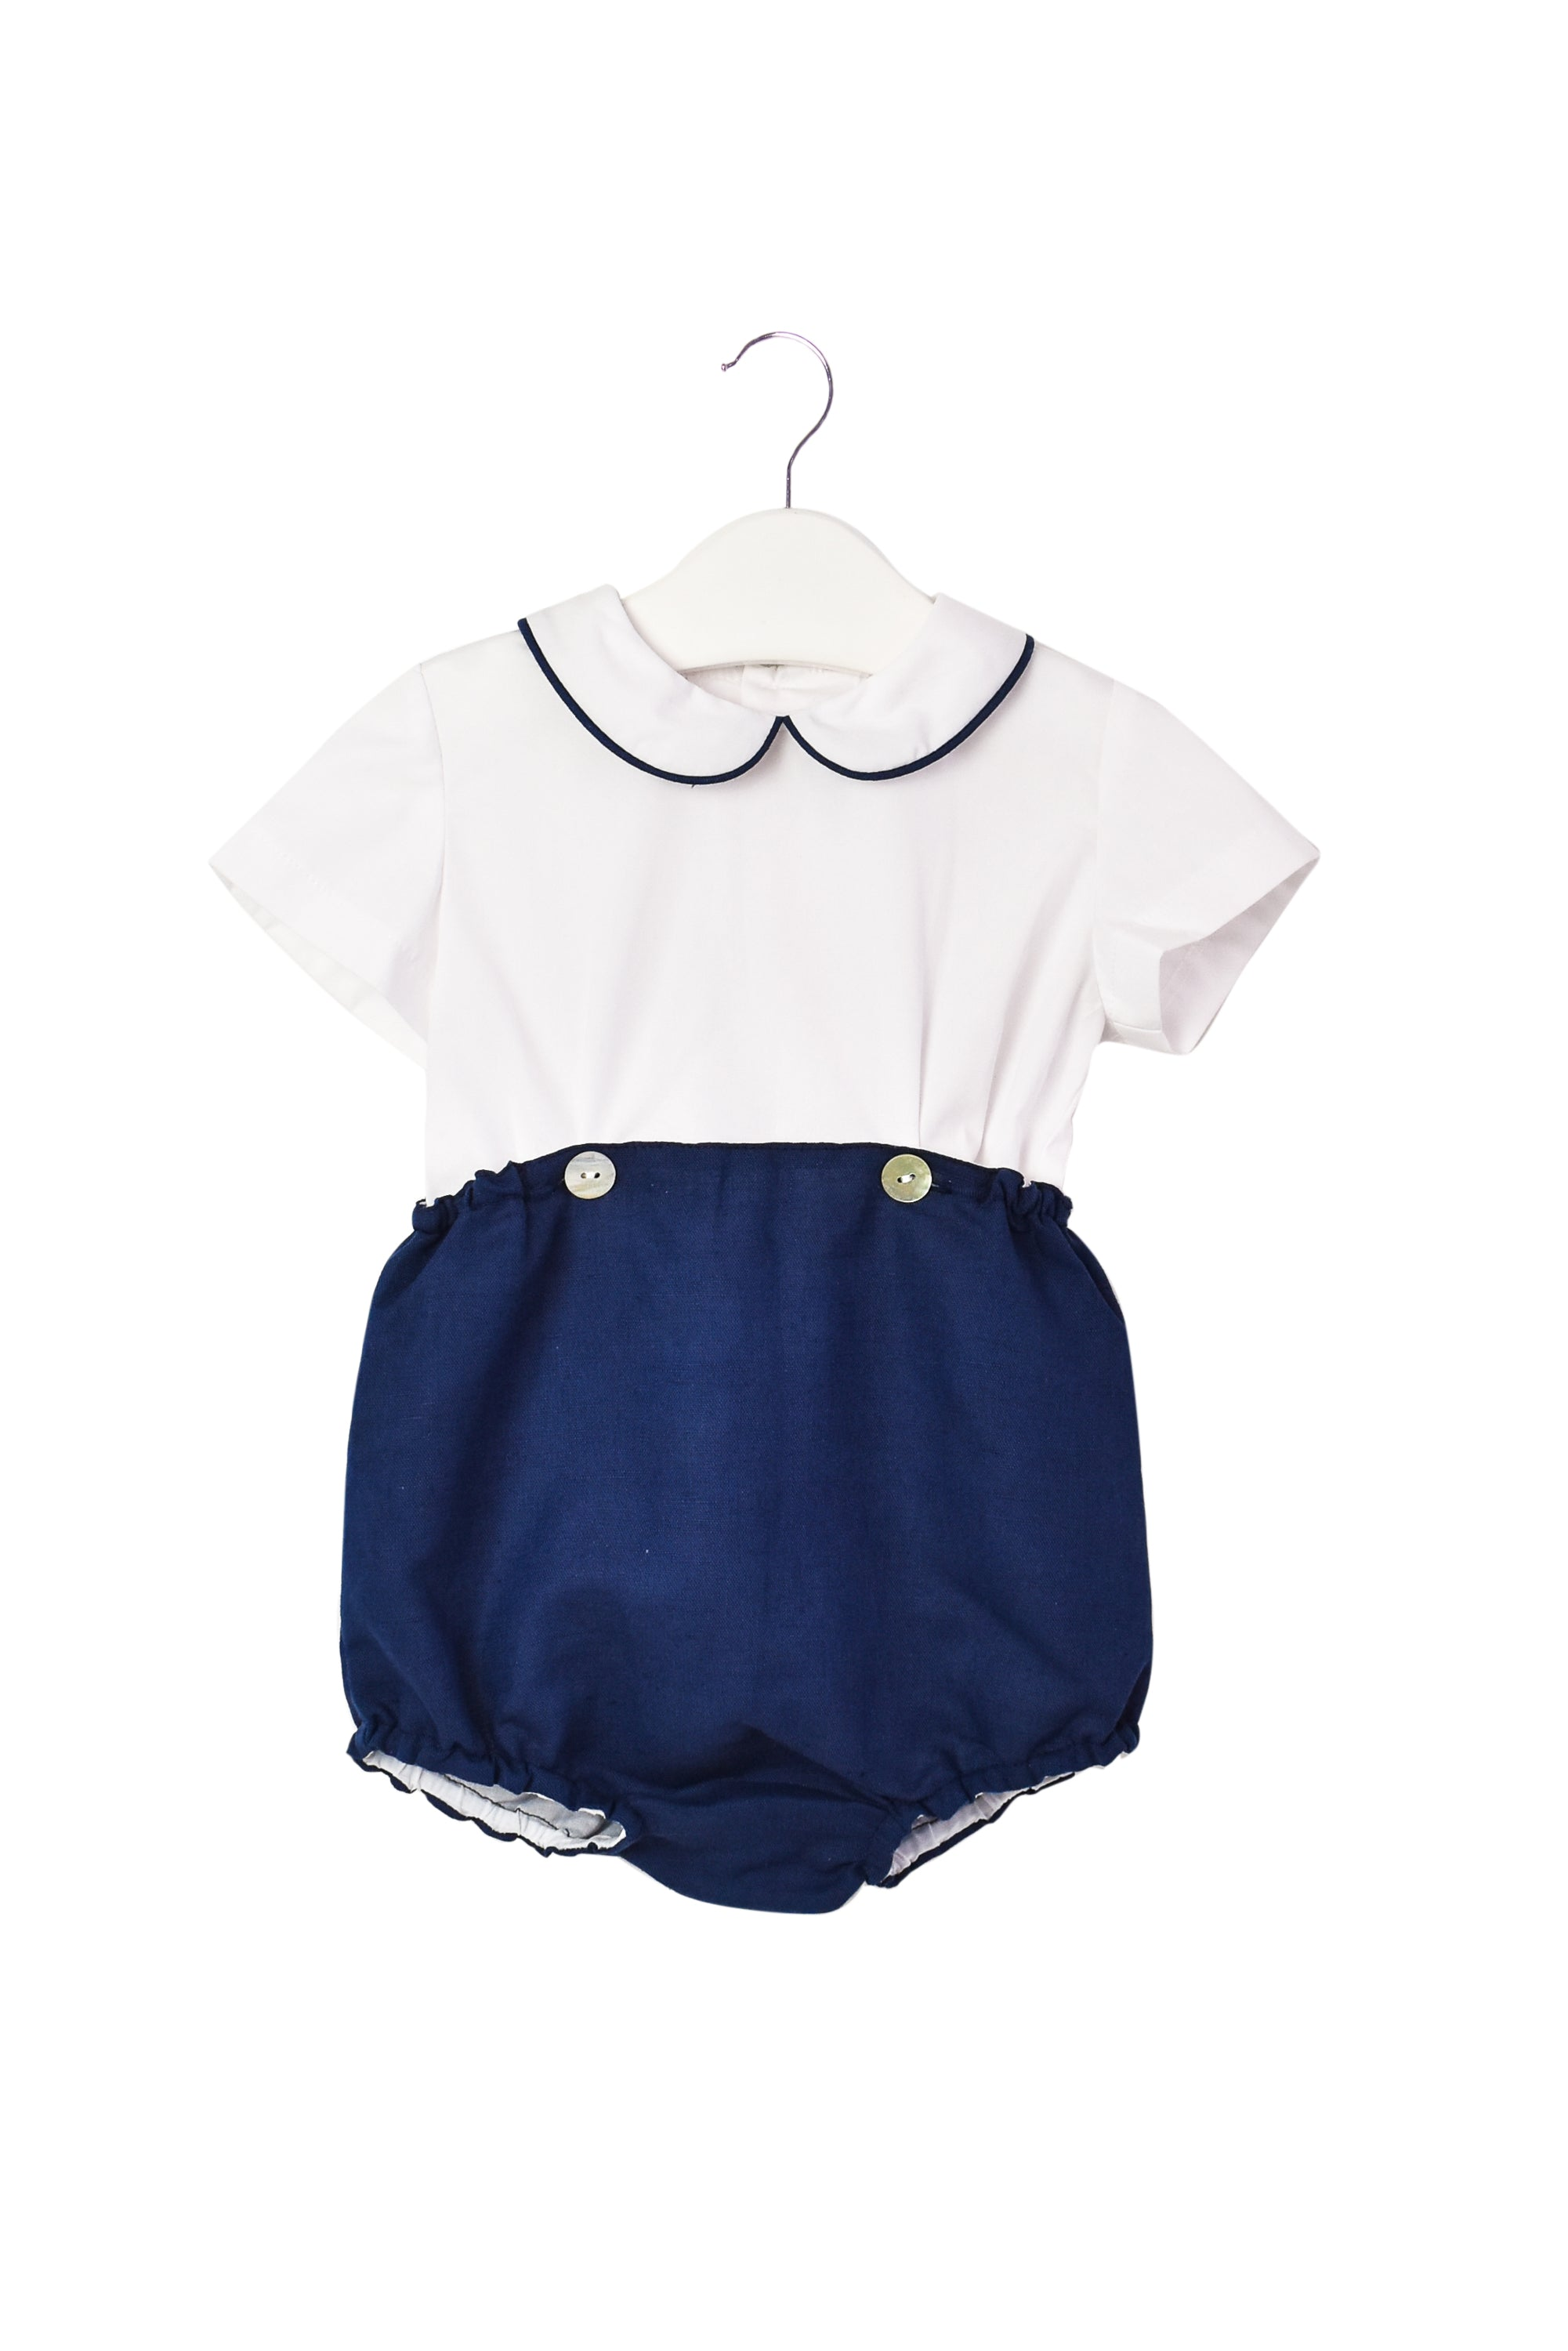 10004840 Ancar Baby~Romper 9M, Ancar Retykle | Online Baby & Kids Clothing Hong Kong